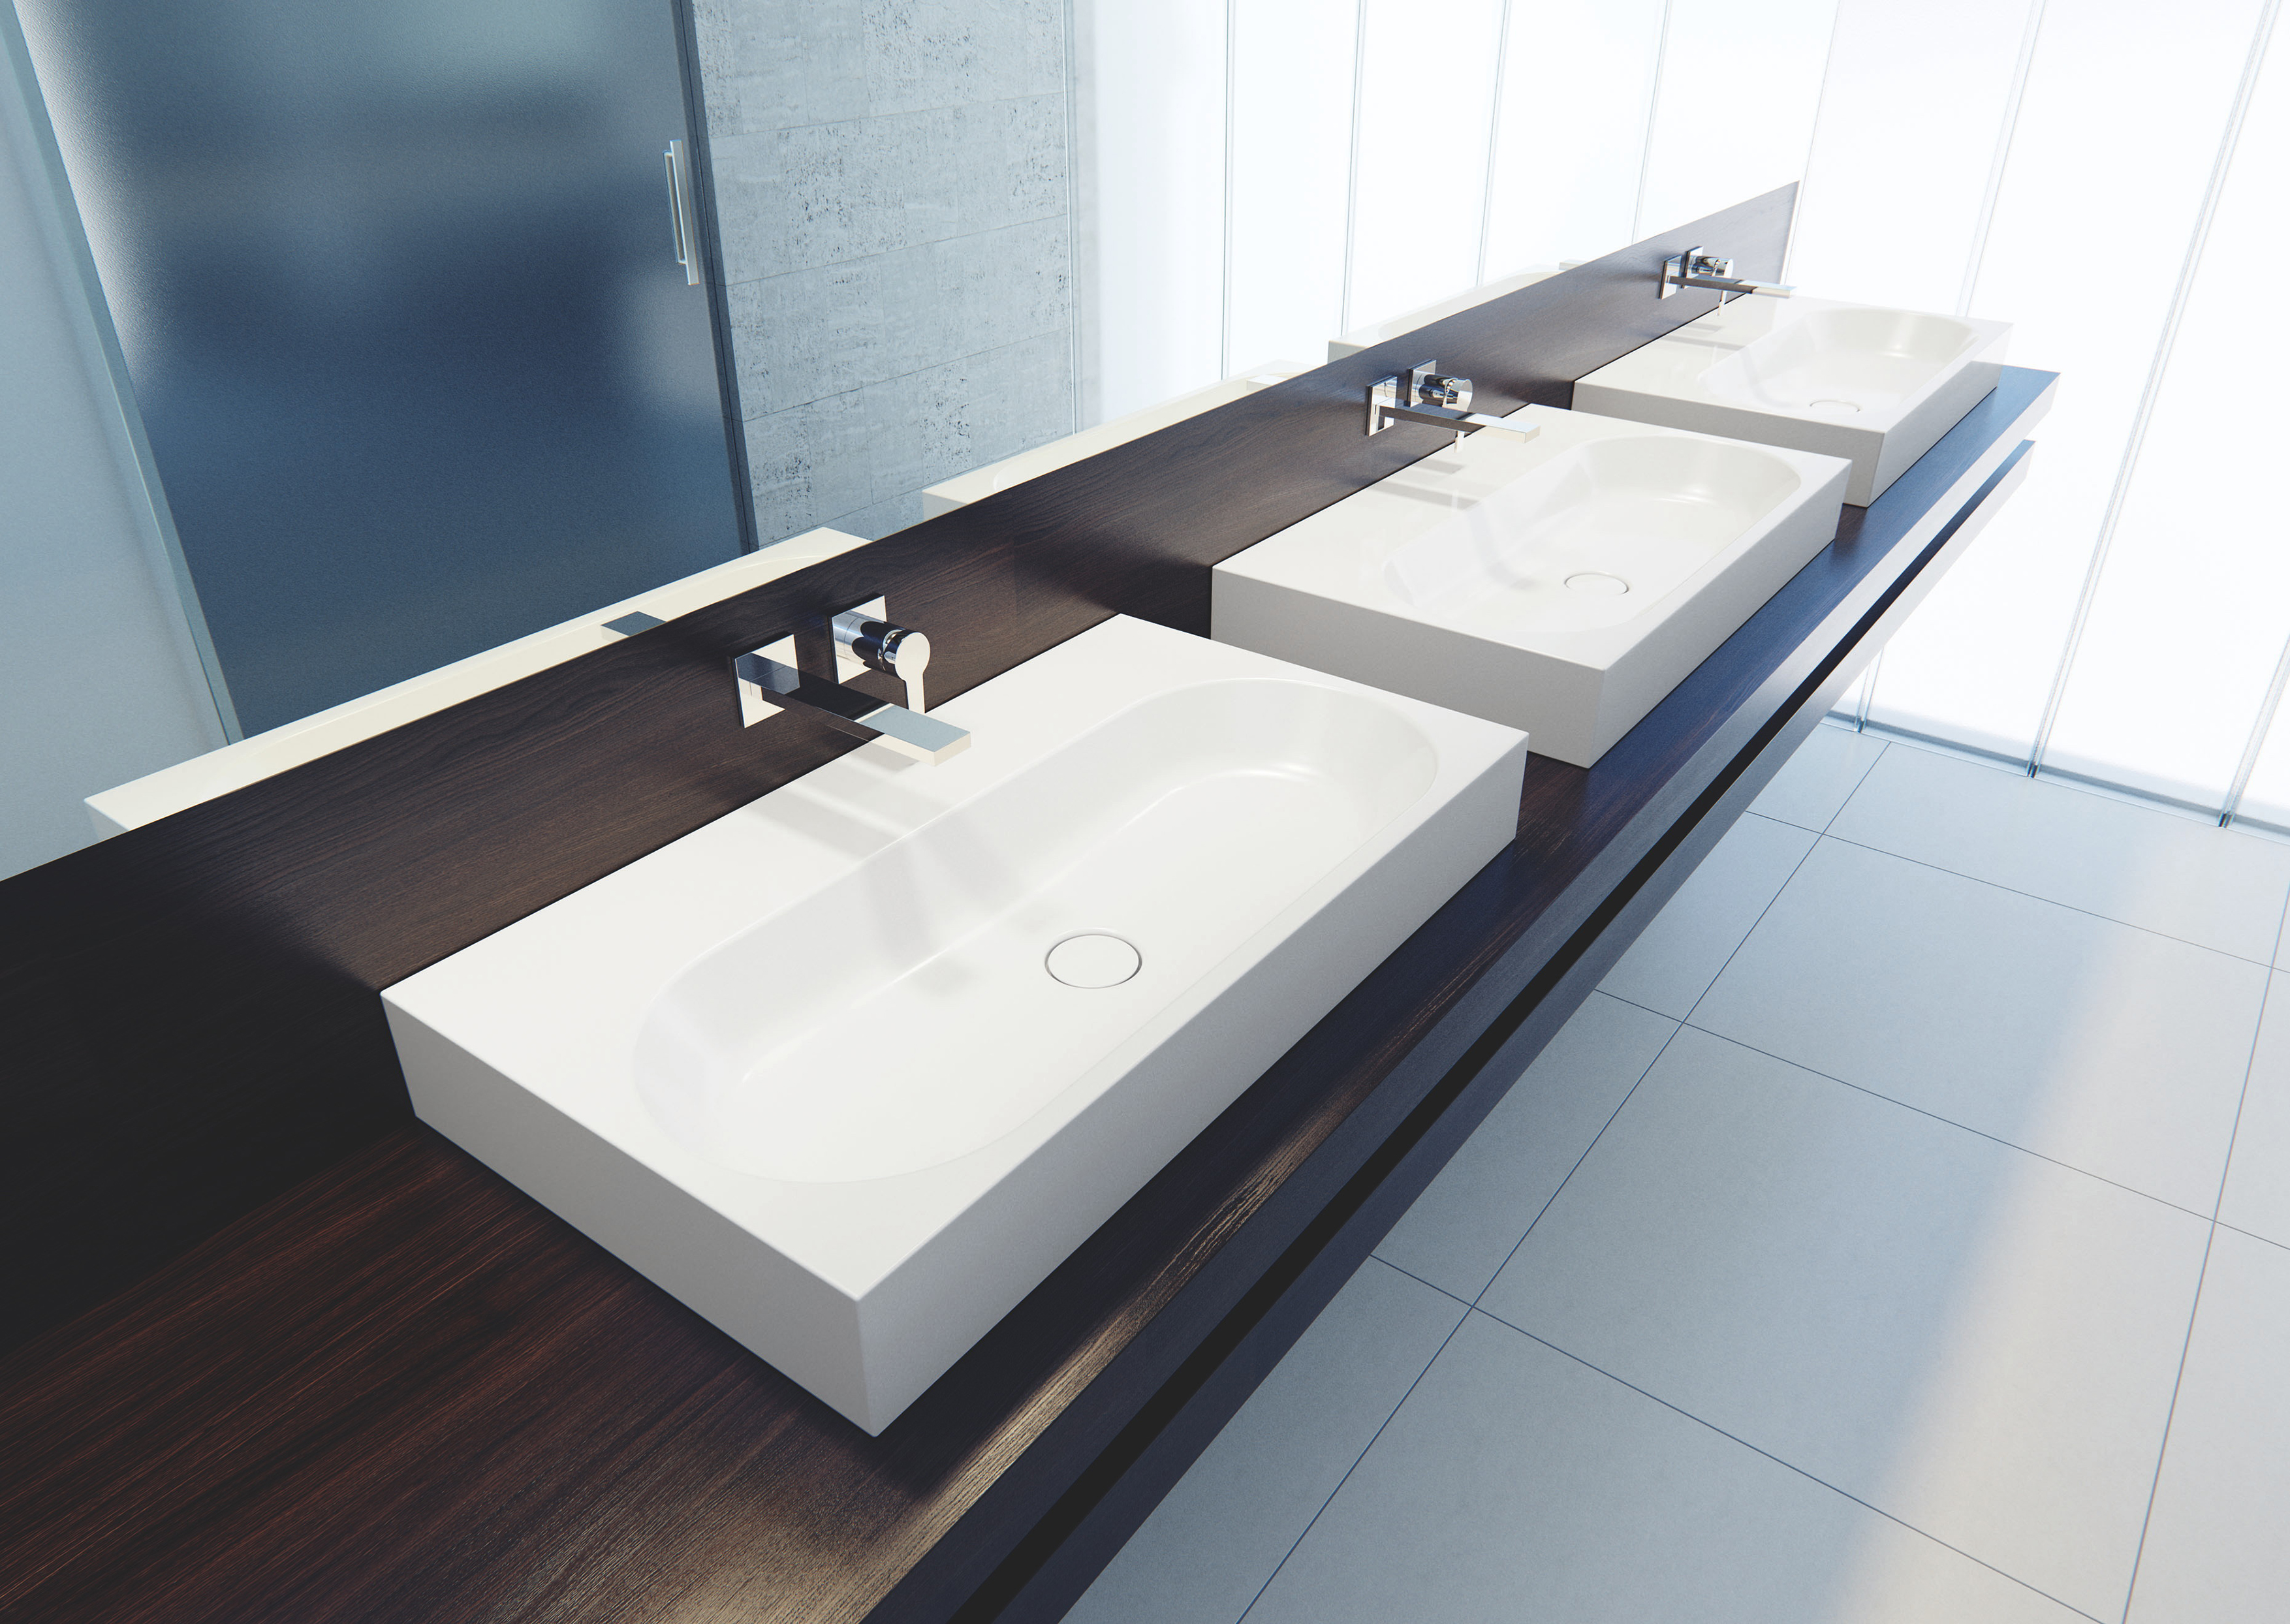 Aufsatzwaschbecken Installation Kaldewei Steel Enamel The Holistic Solution For Hotel Bathrooms